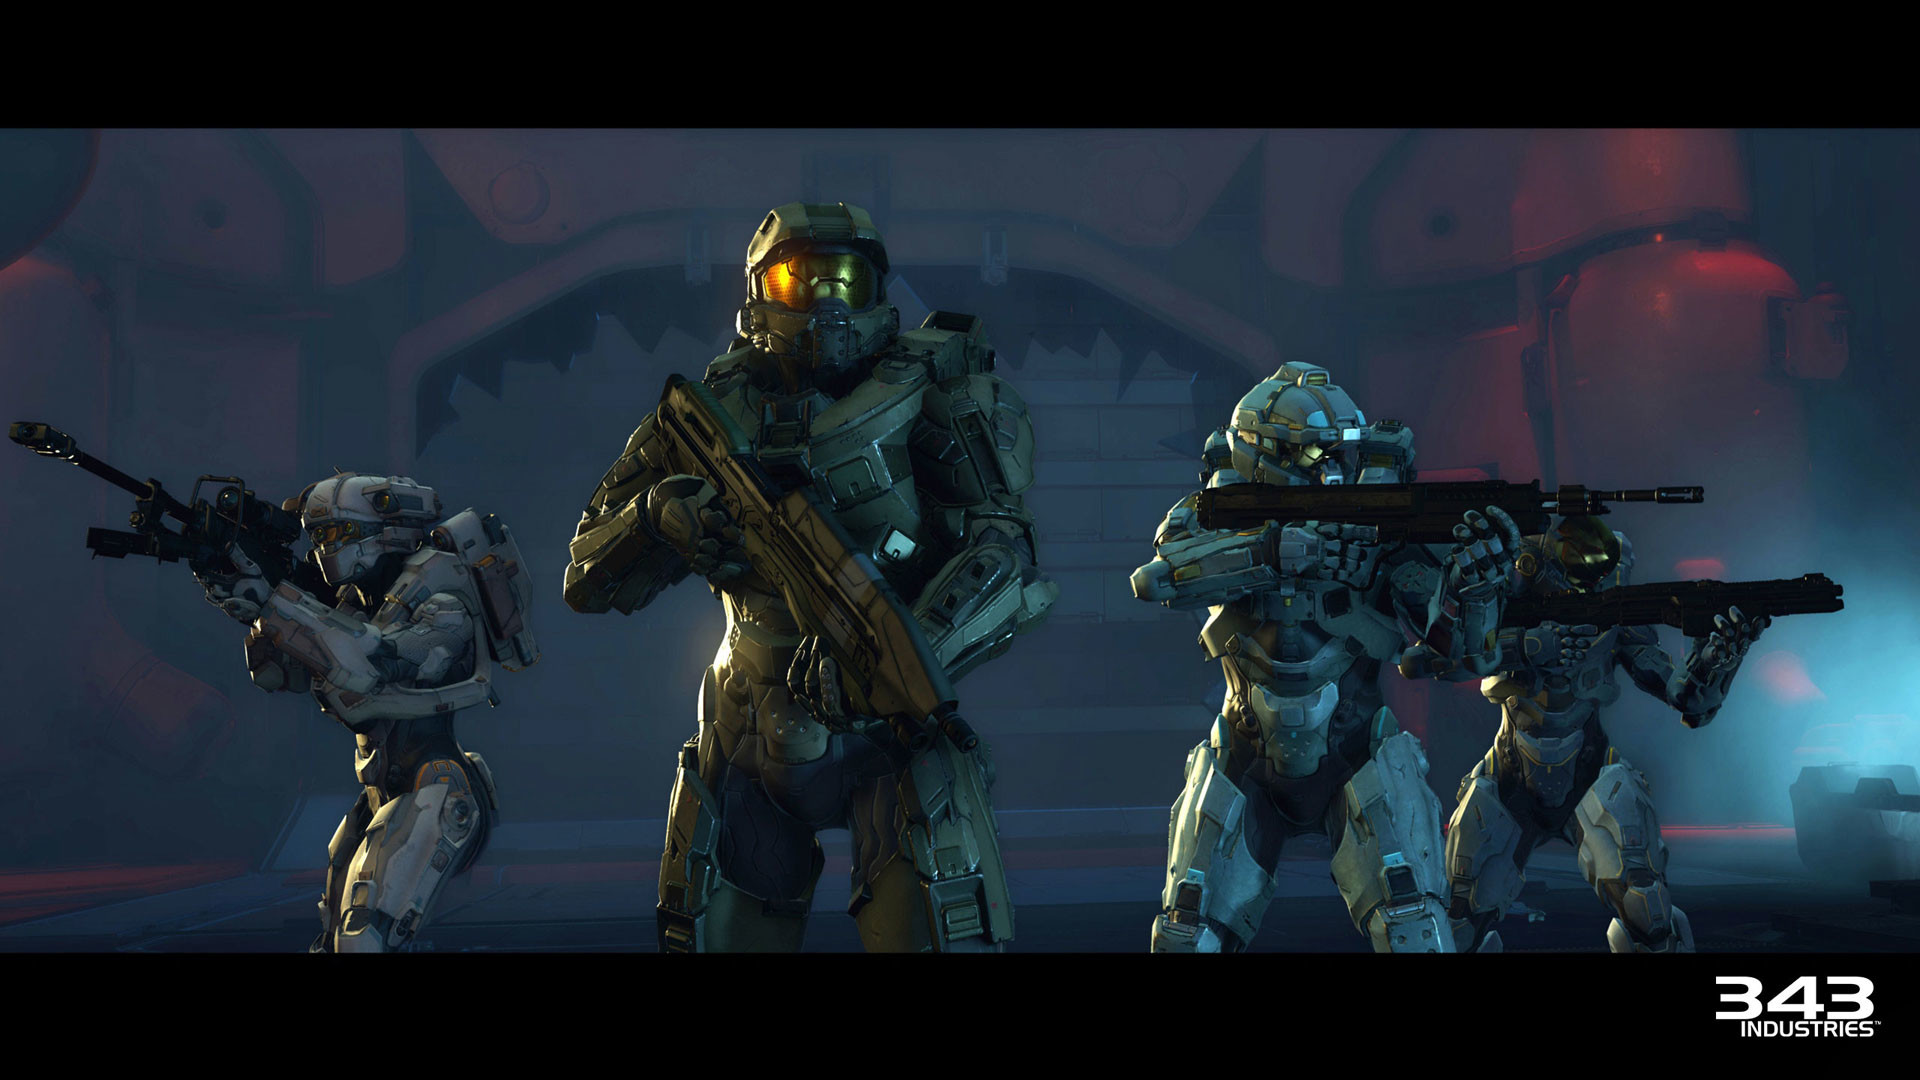 Two Distinct Teams. With Halo 5: …